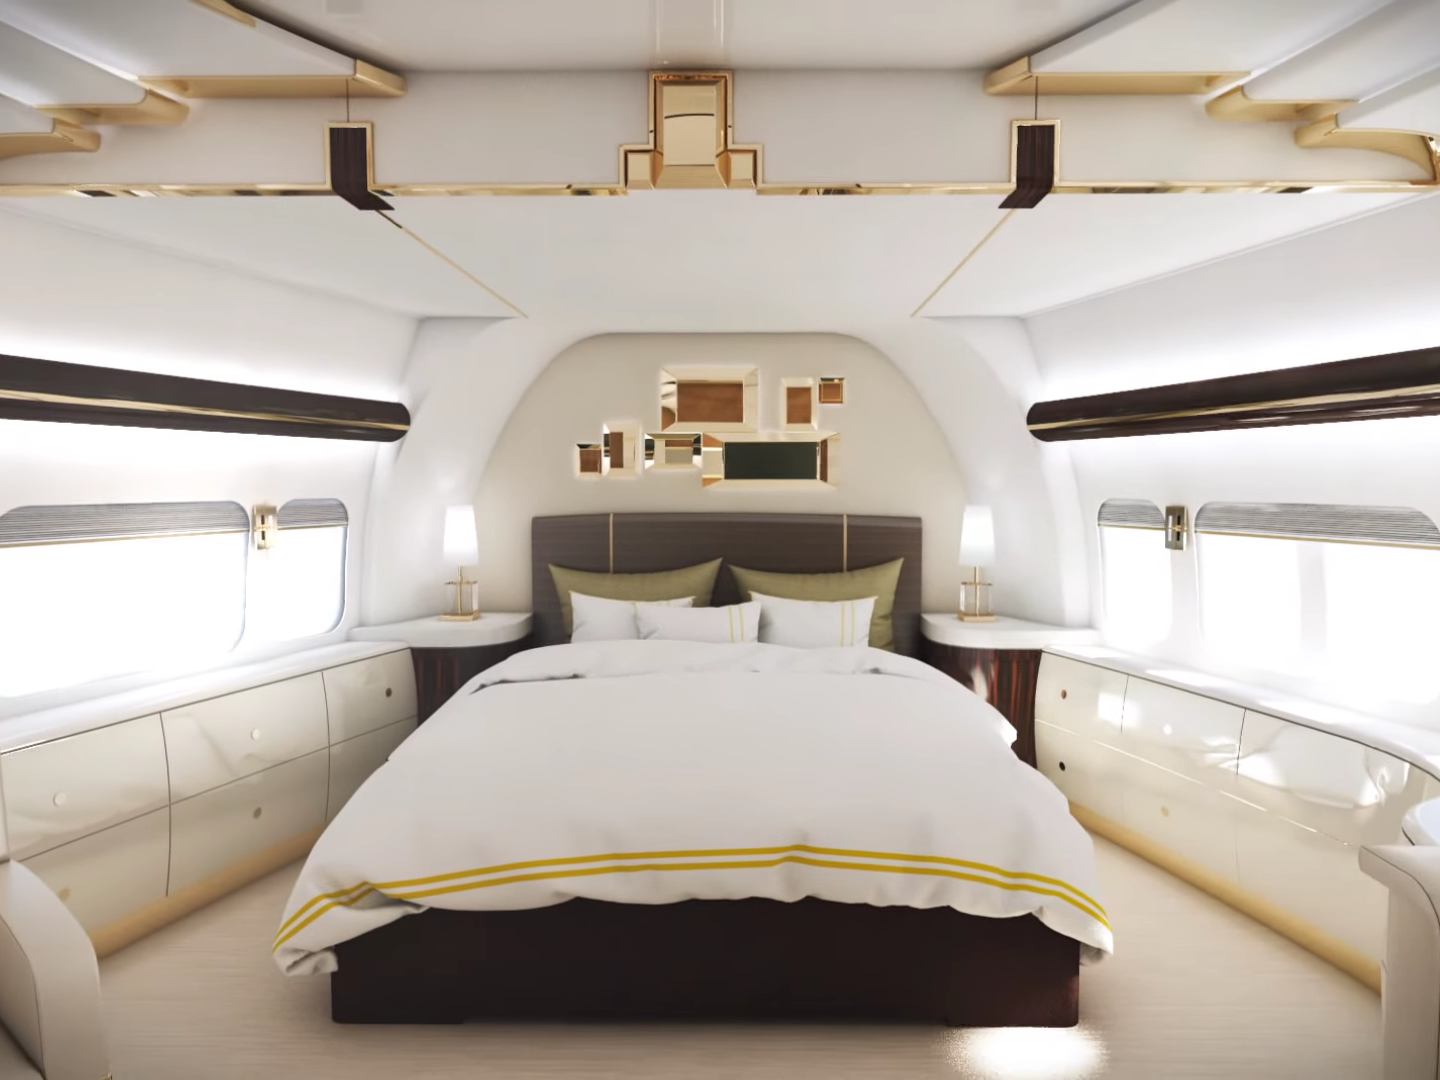 Private jet interior furnished like a vintage train aviation - Inside The Most Luxurious Private Jets Business Insider